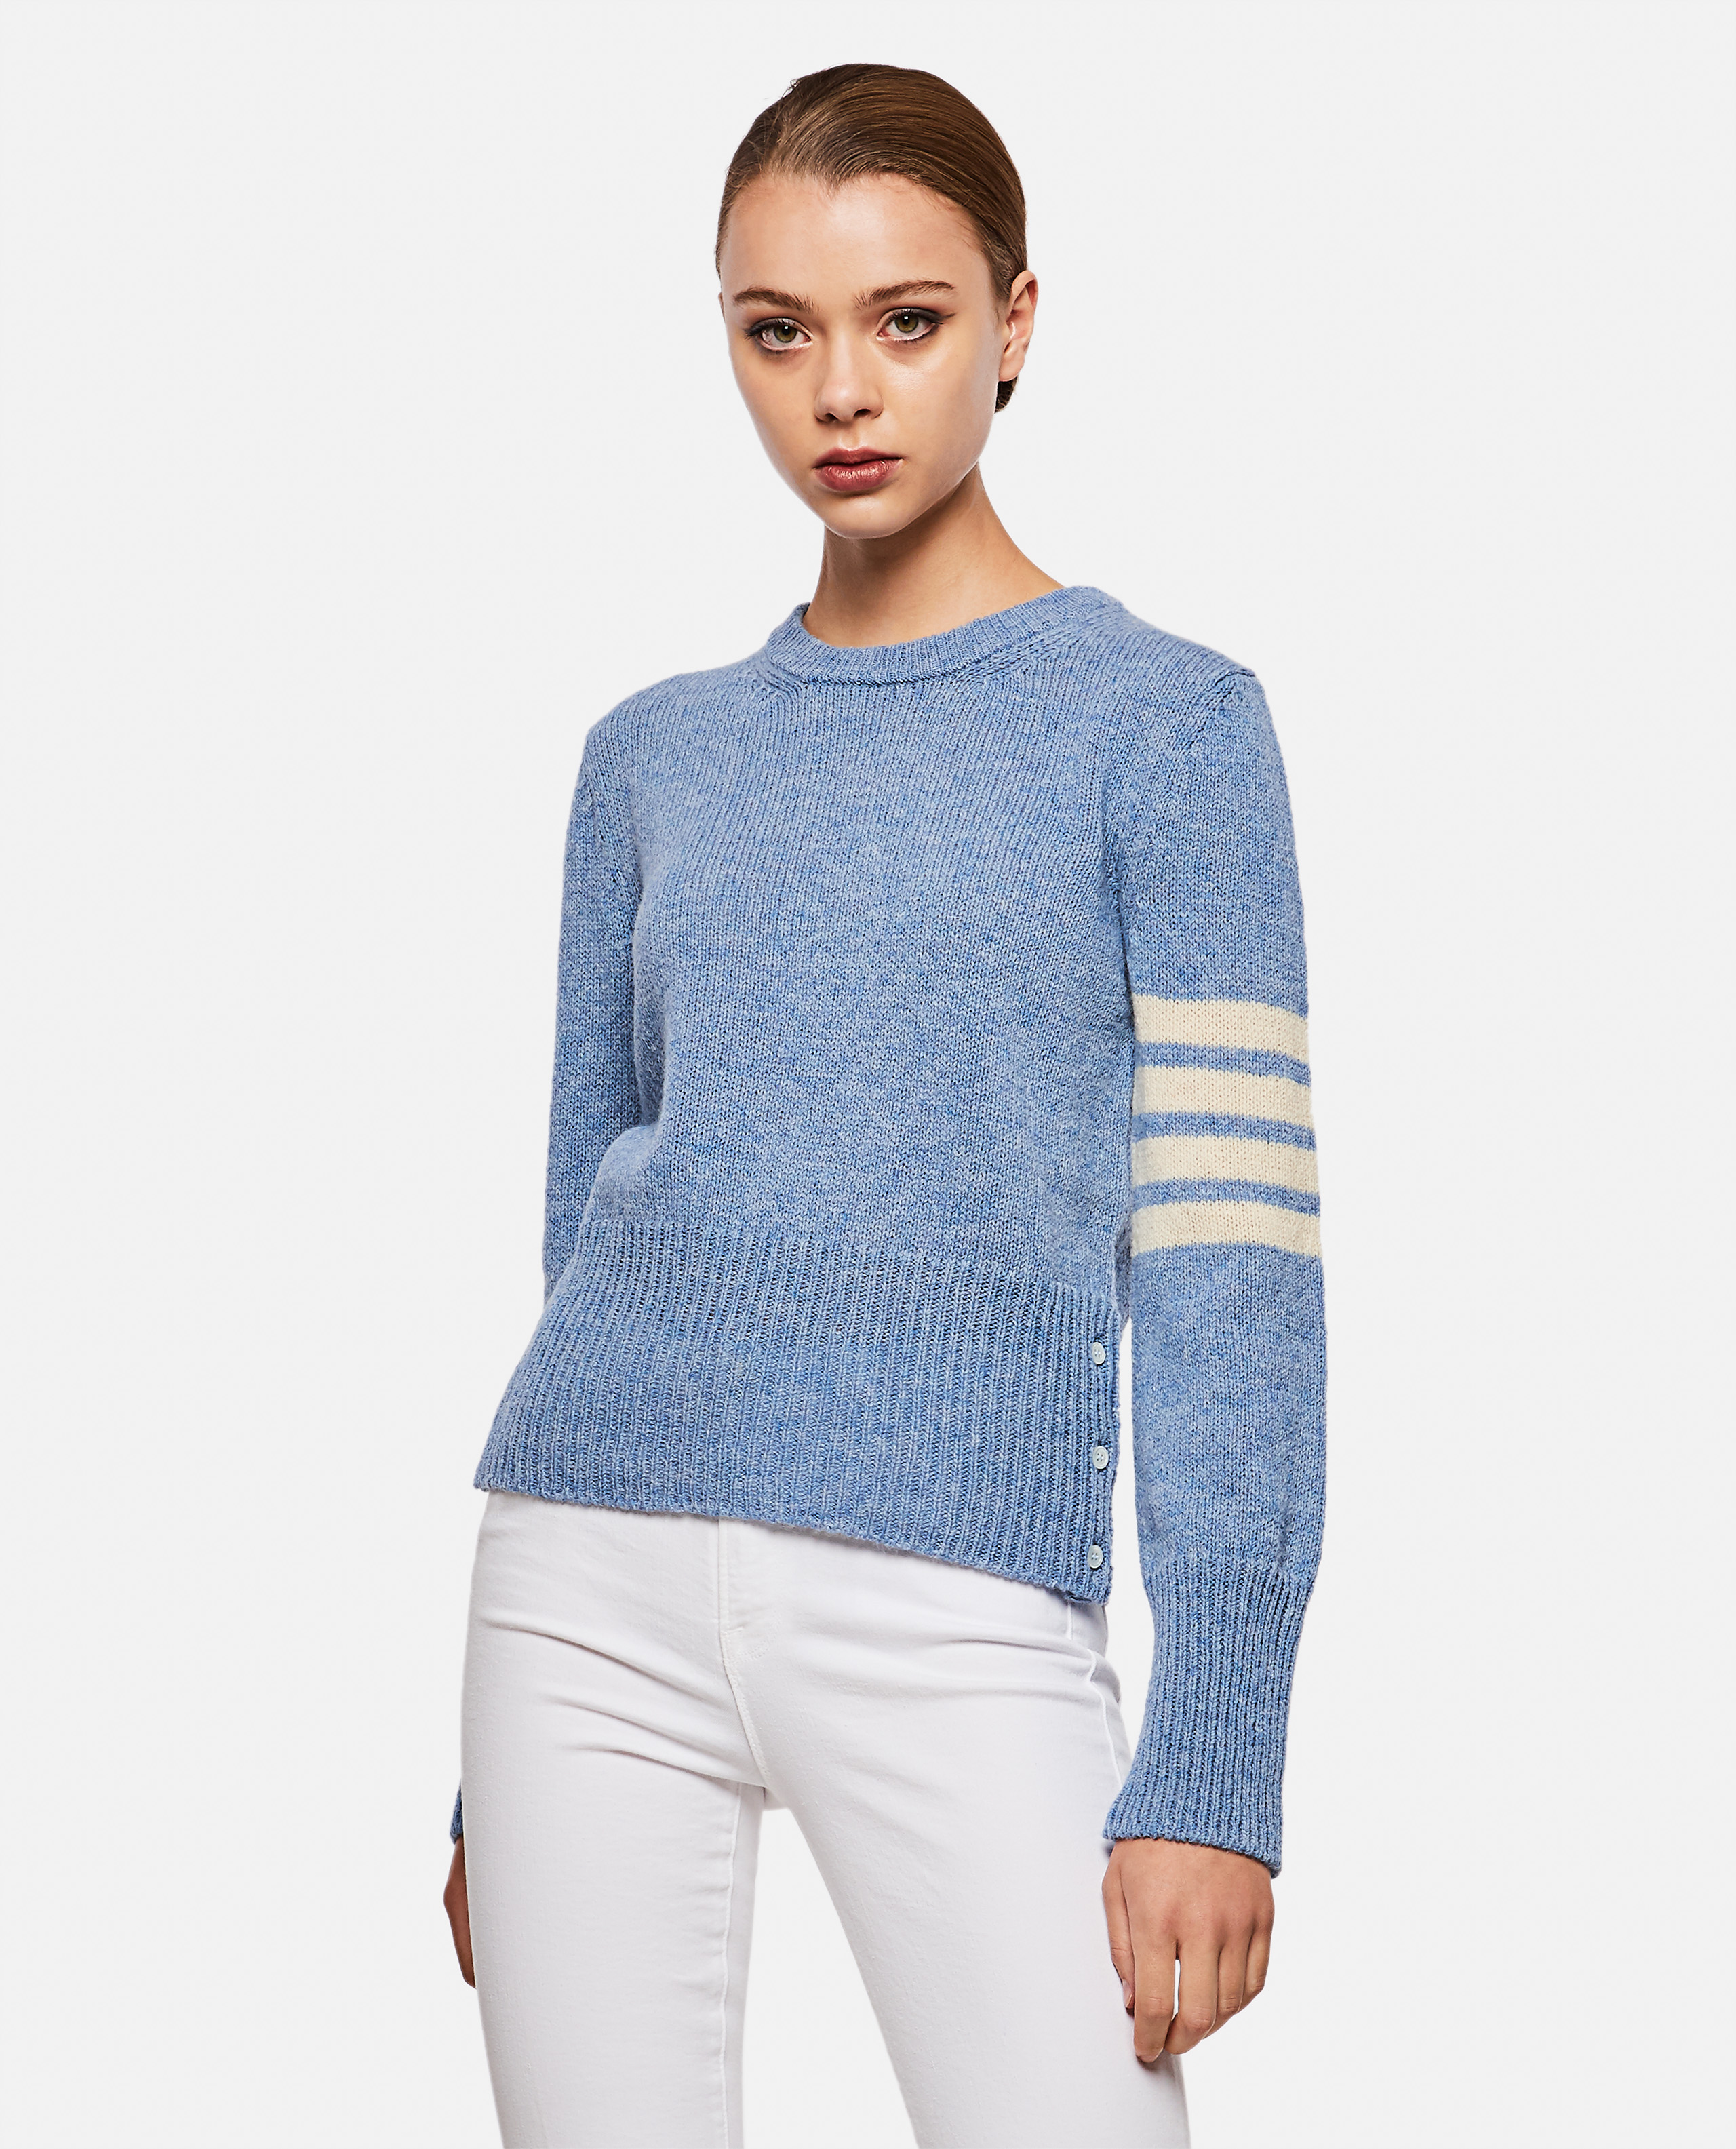 Thom Browne 4-bar knitted sweater